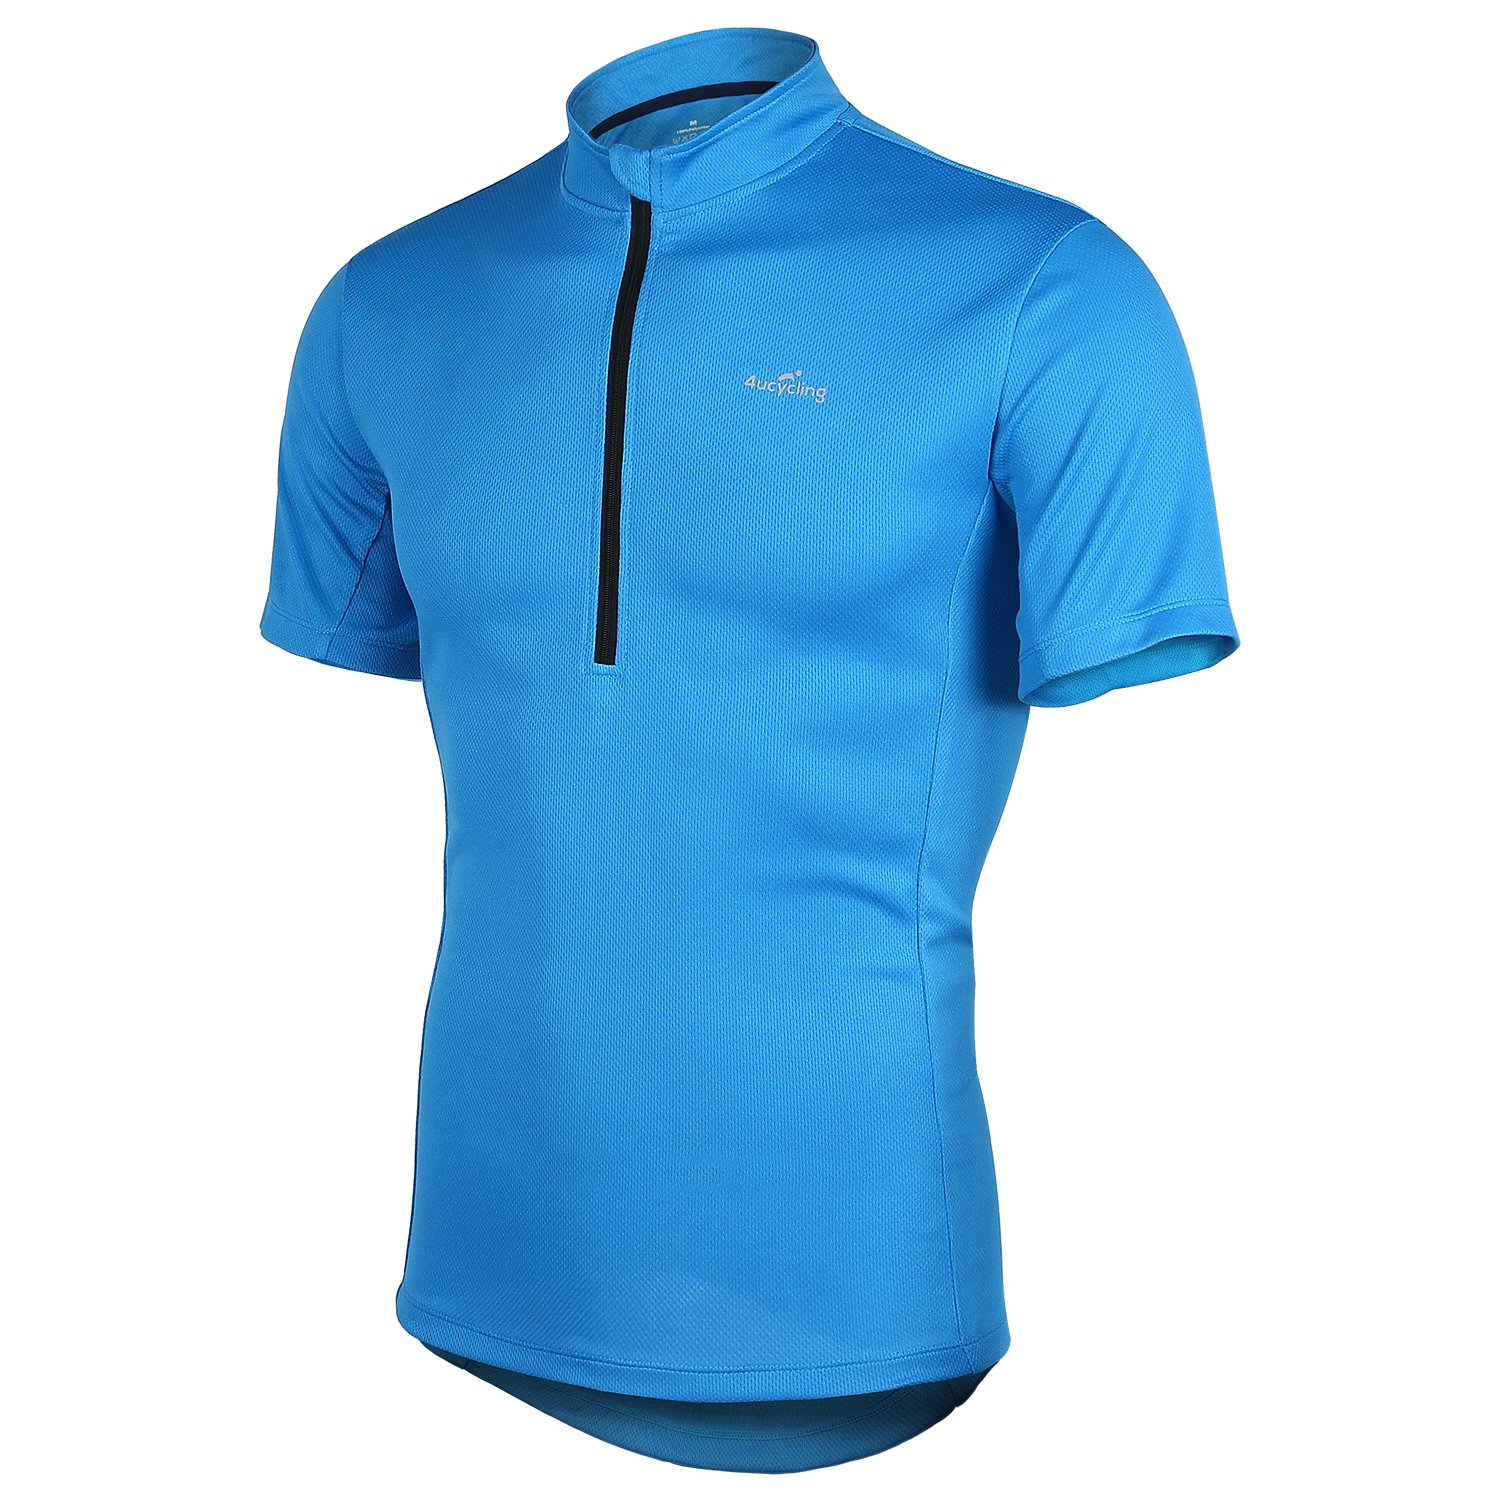 Short Sleeve Cycling Jersey Men's Quick Dry Basic Shirts Blue M